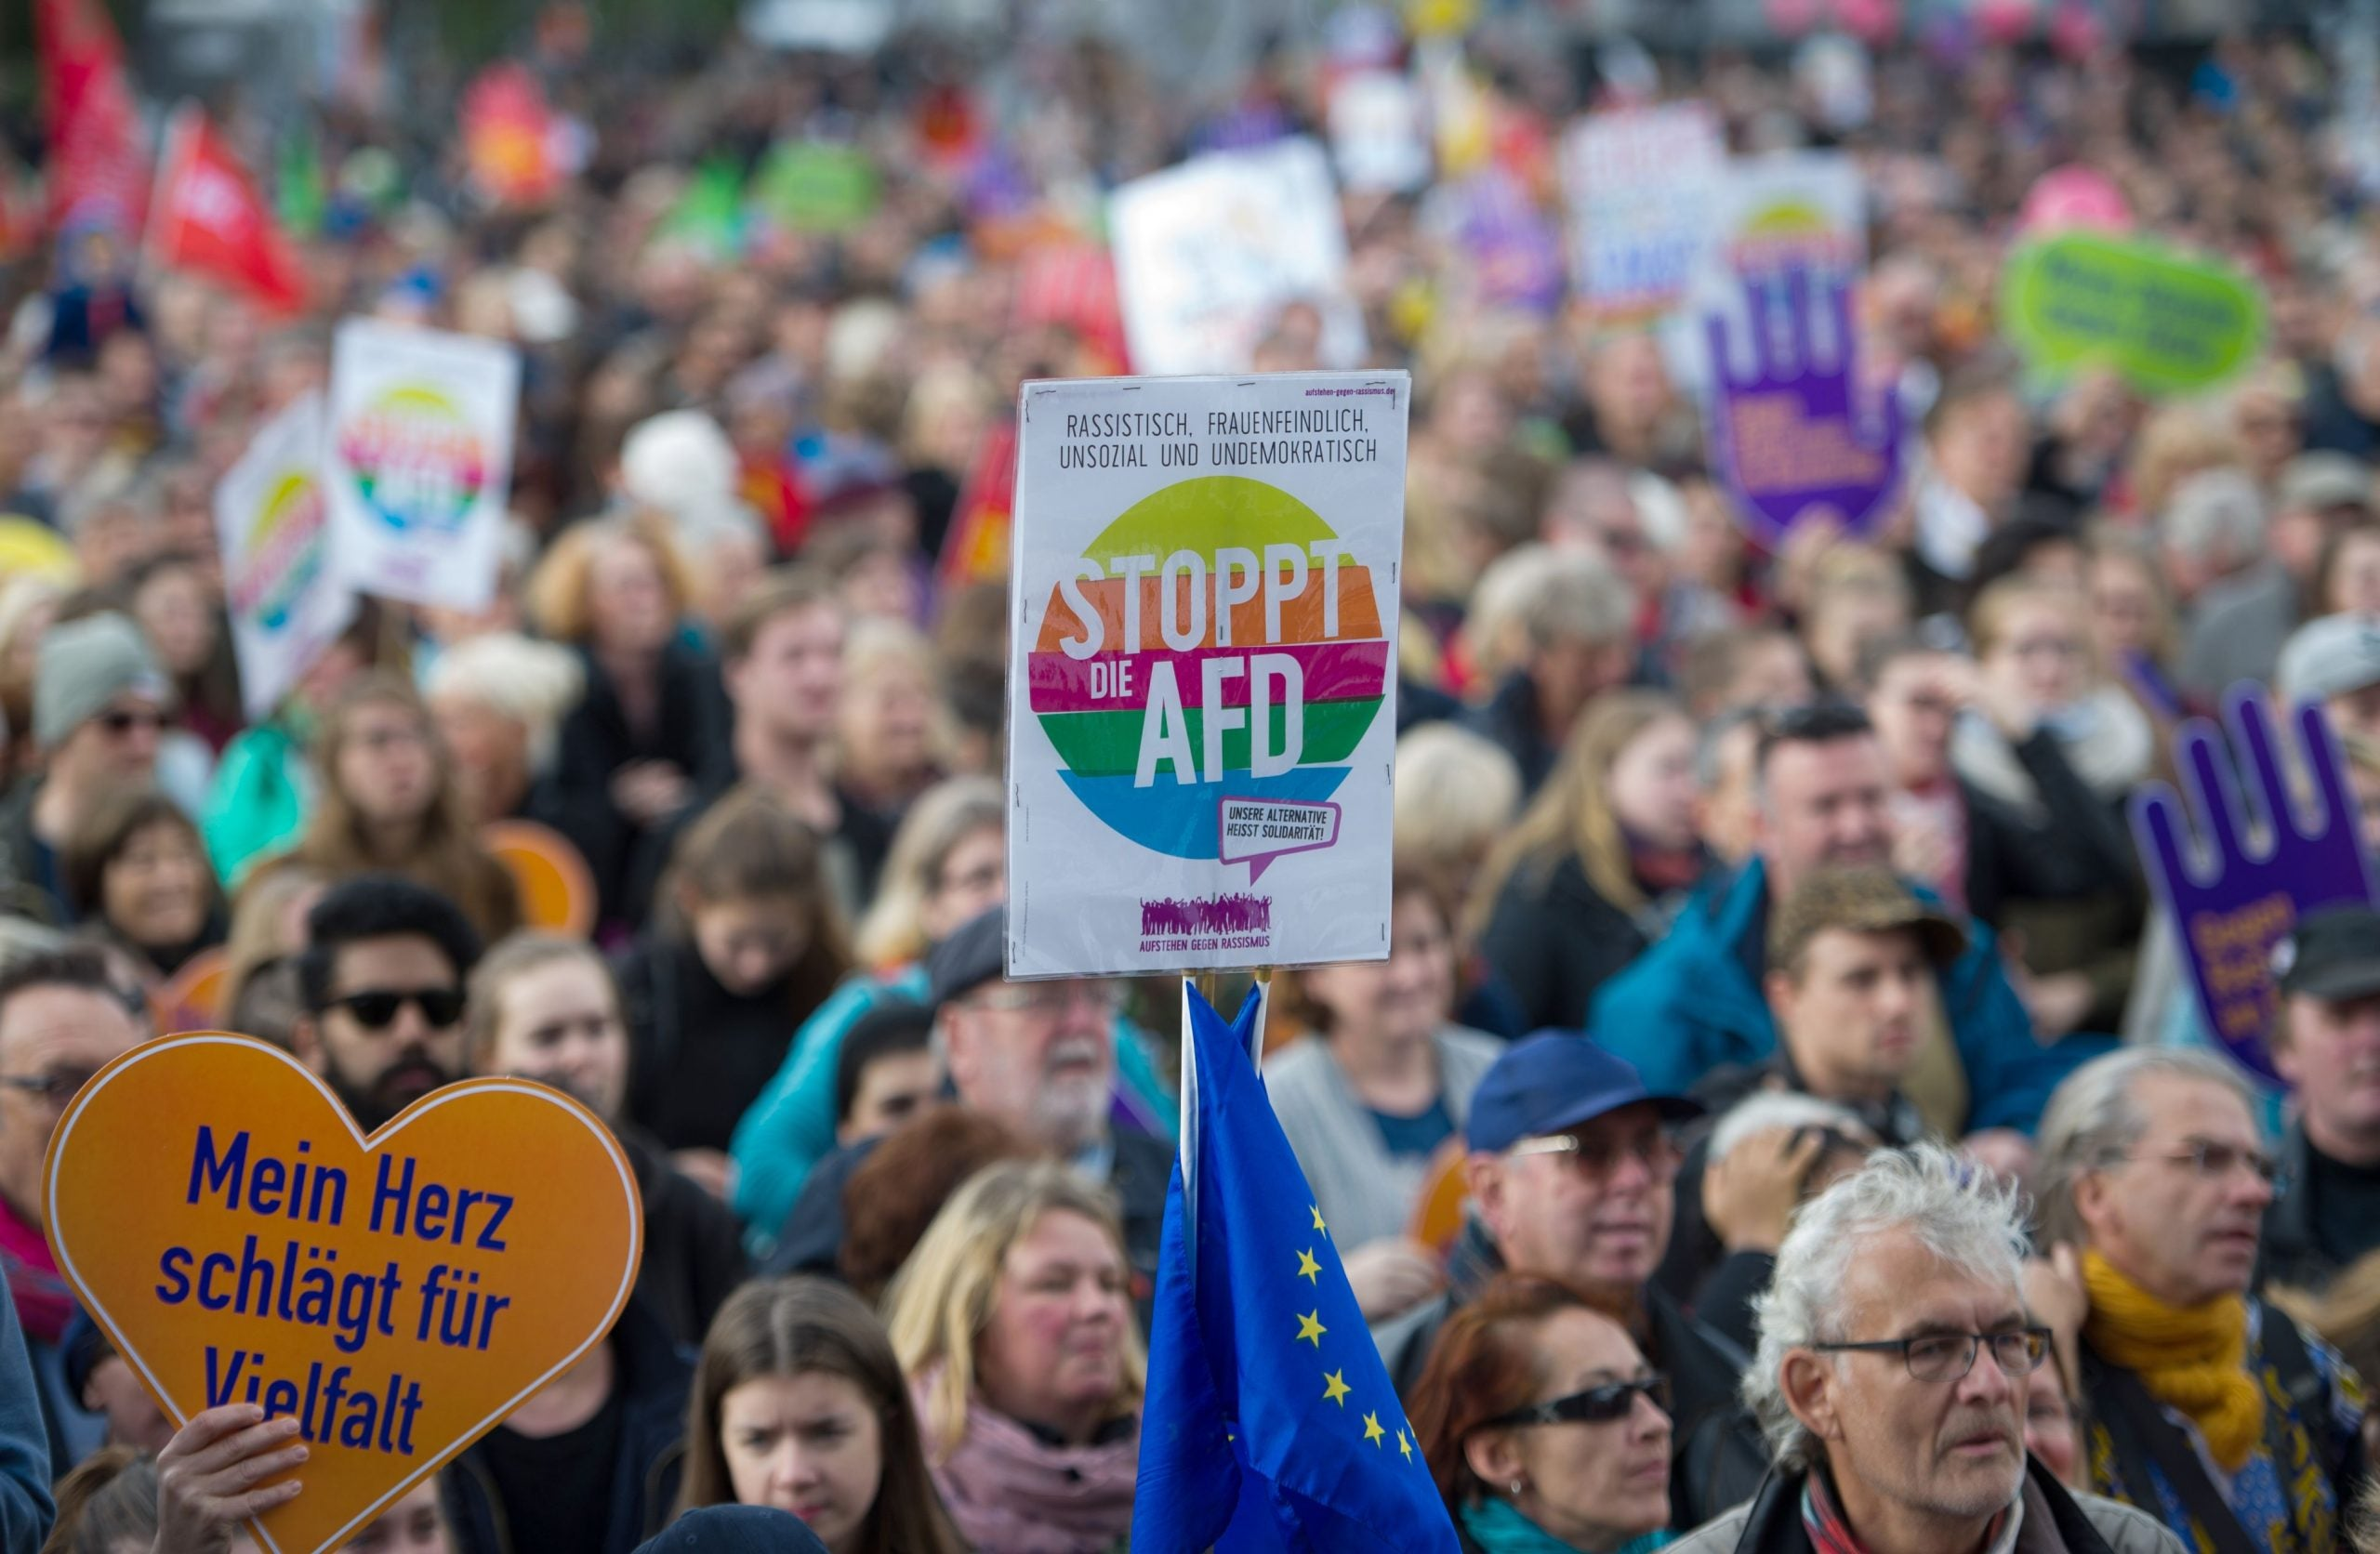 Why the rise and decline of the AfD party in Germany is a parable for our times